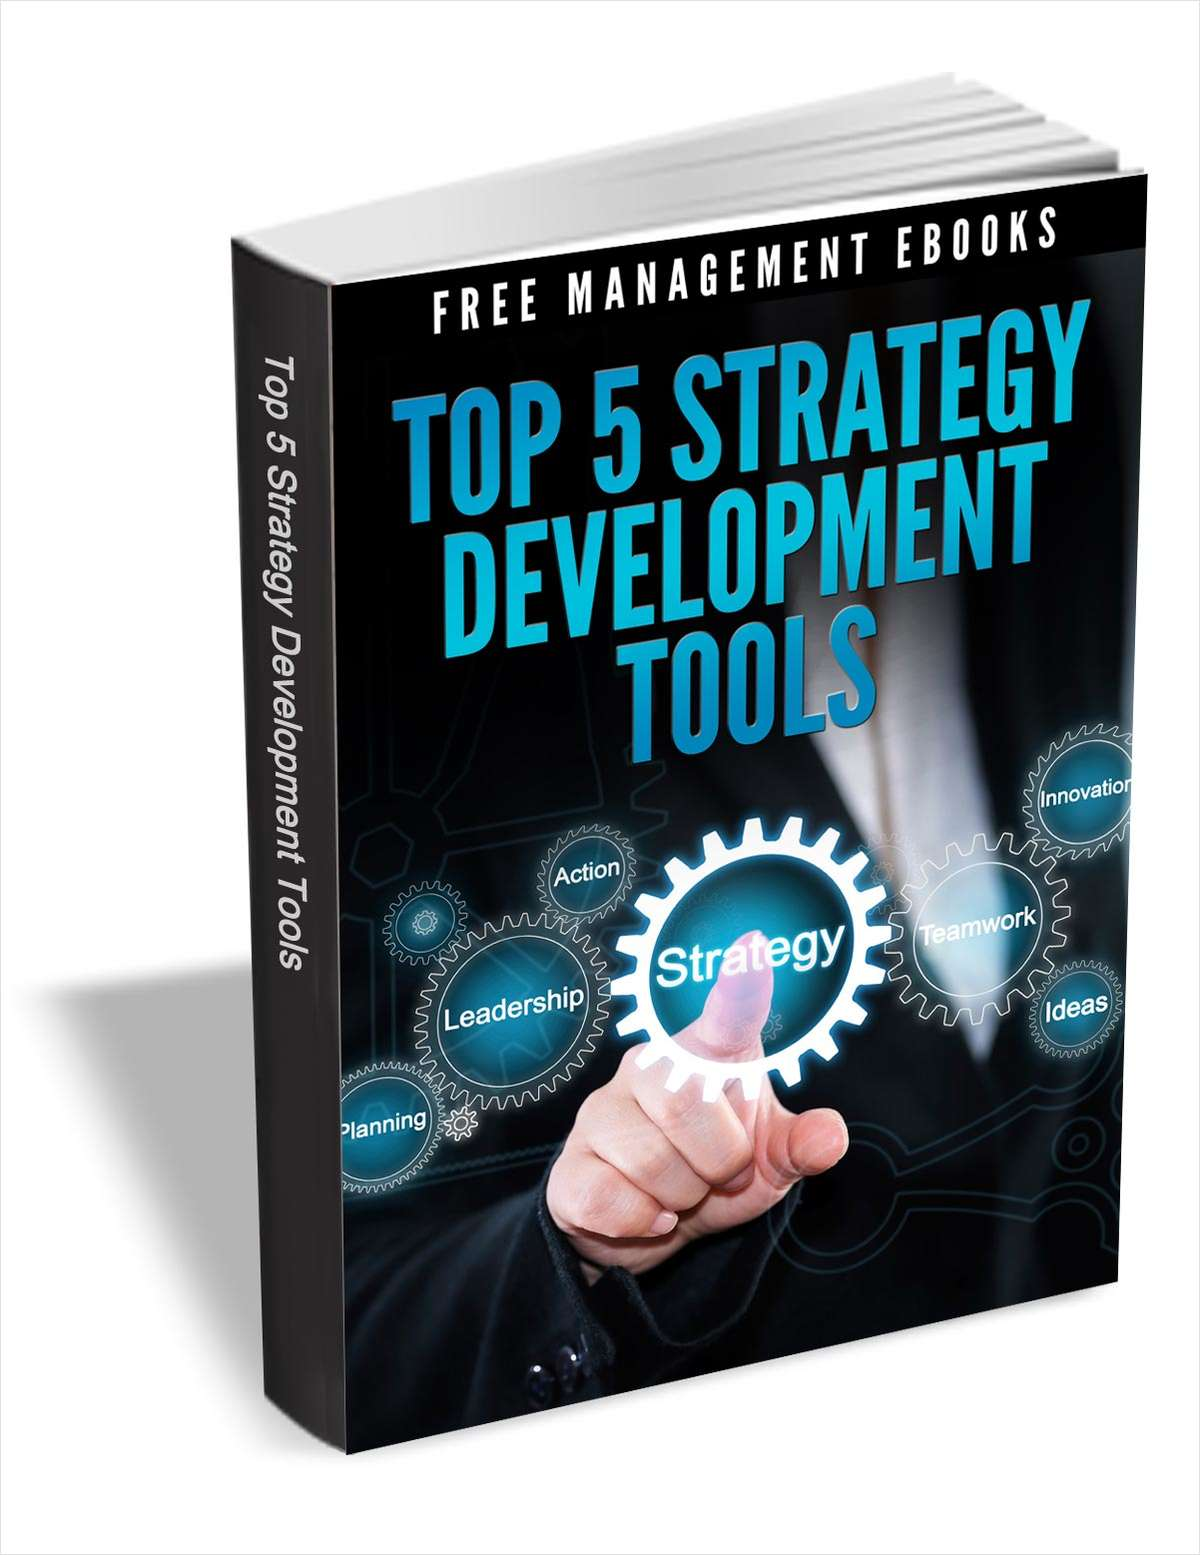 Top 5 Strategy Development Tools